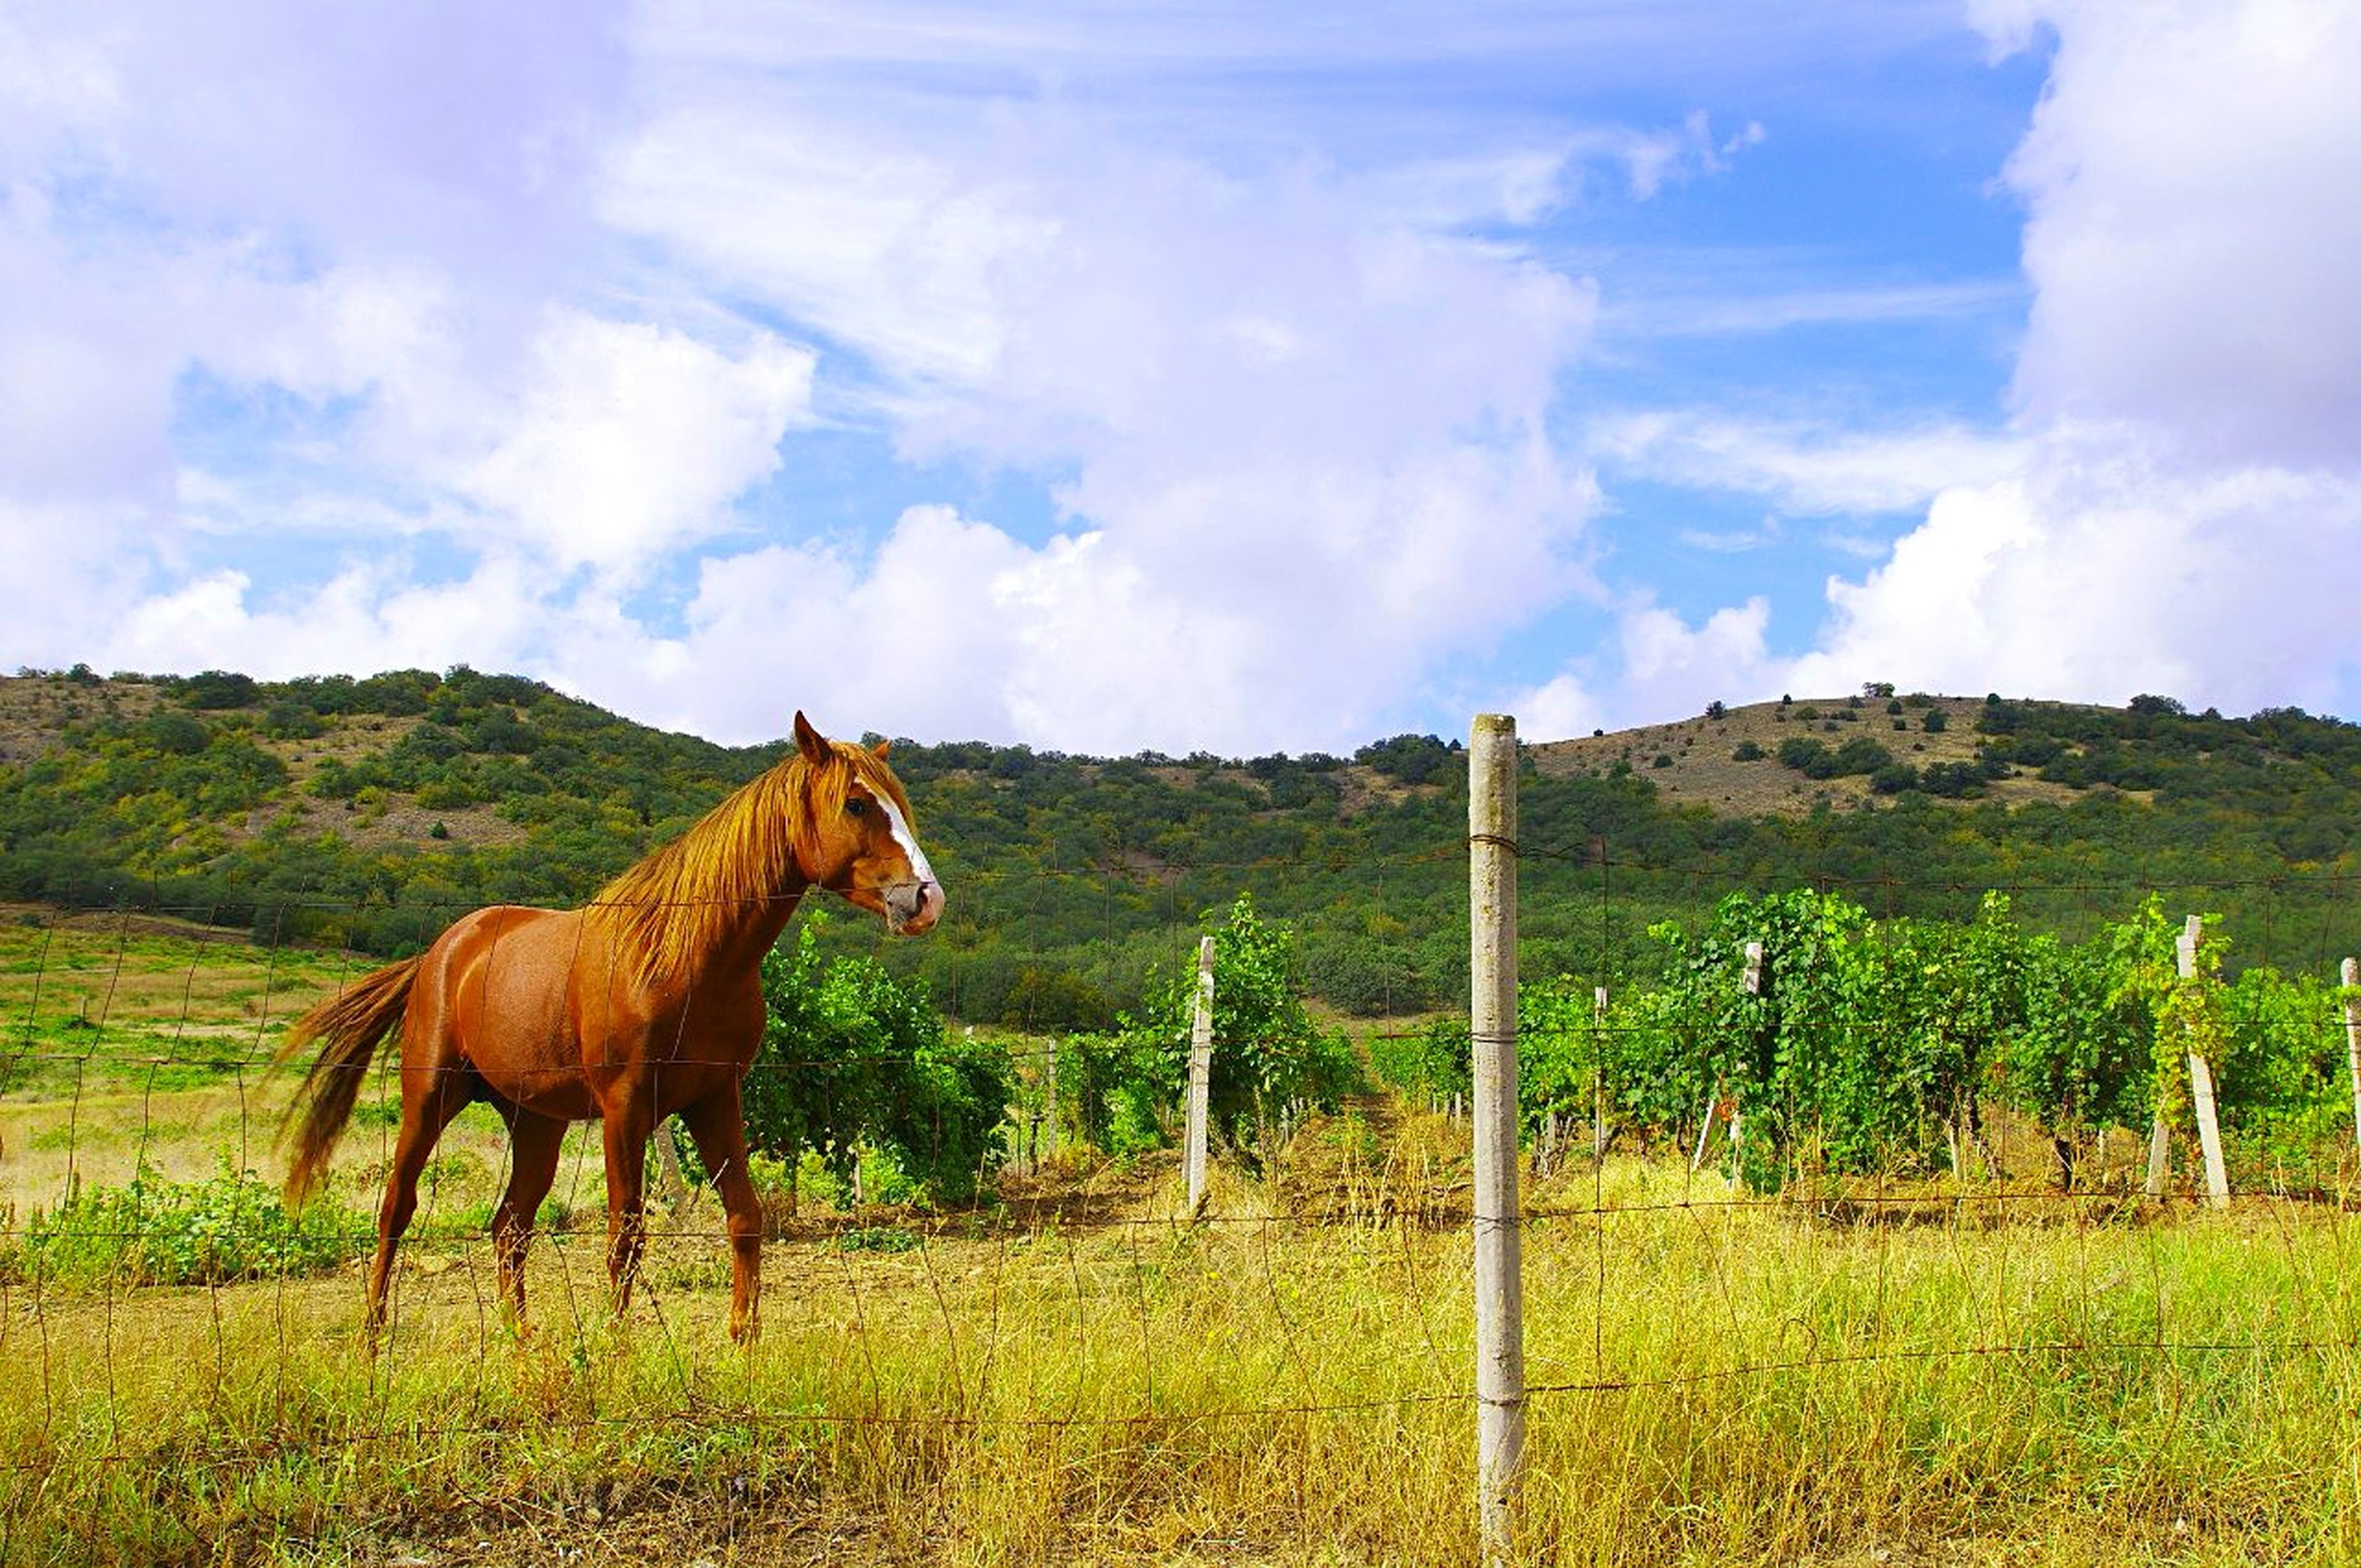 animal themes, horse, mammal, domestic animals, field, sky, grass, livestock, landscape, herbivorous, one animal, grazing, grassy, cloud - sky, tree, standing, rural scene, nature, fence, pasture